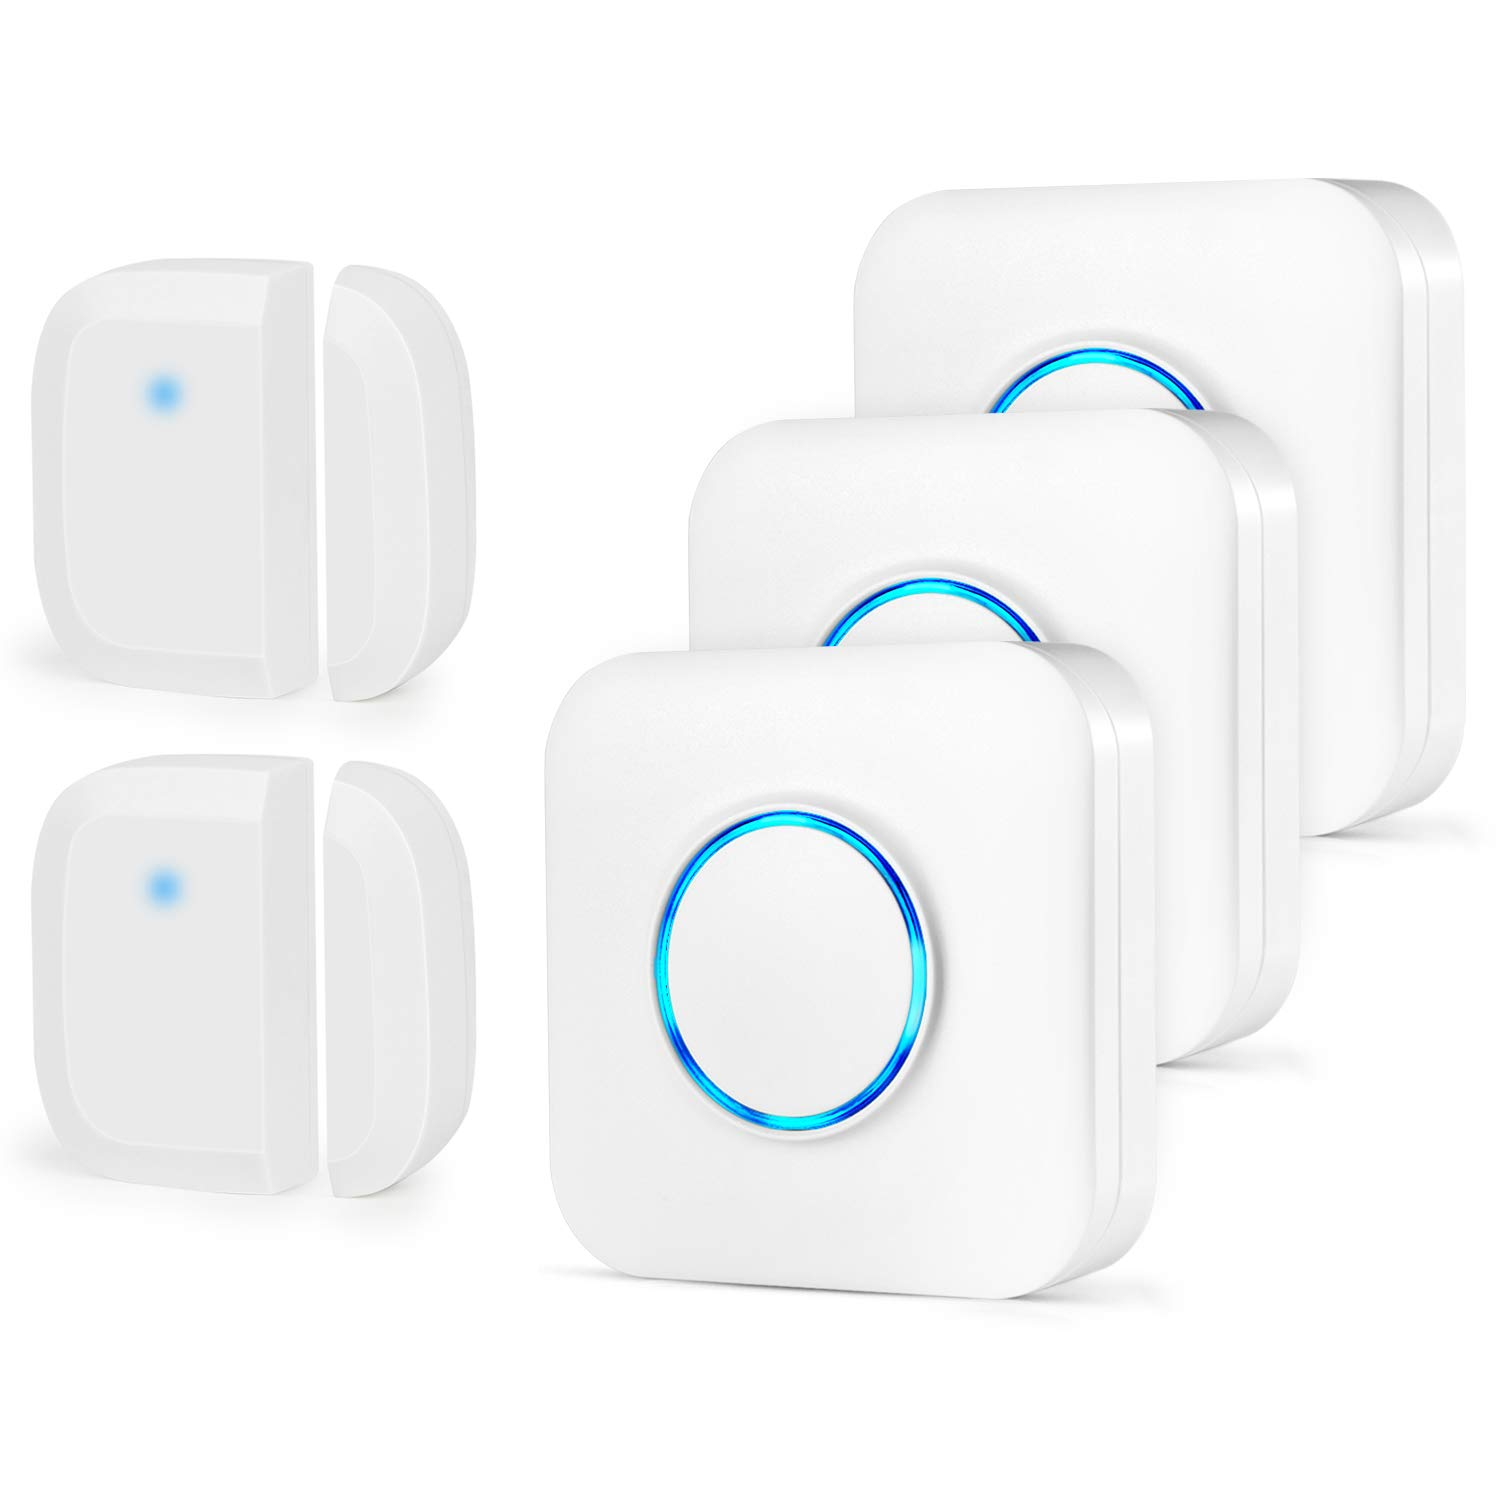 Bistee Wireless Doorbell Door Sensor Chime Operating Range at 600 Feet with 52 Ringtones for Home Windows (2 Door Sensors + 3 Receivers)